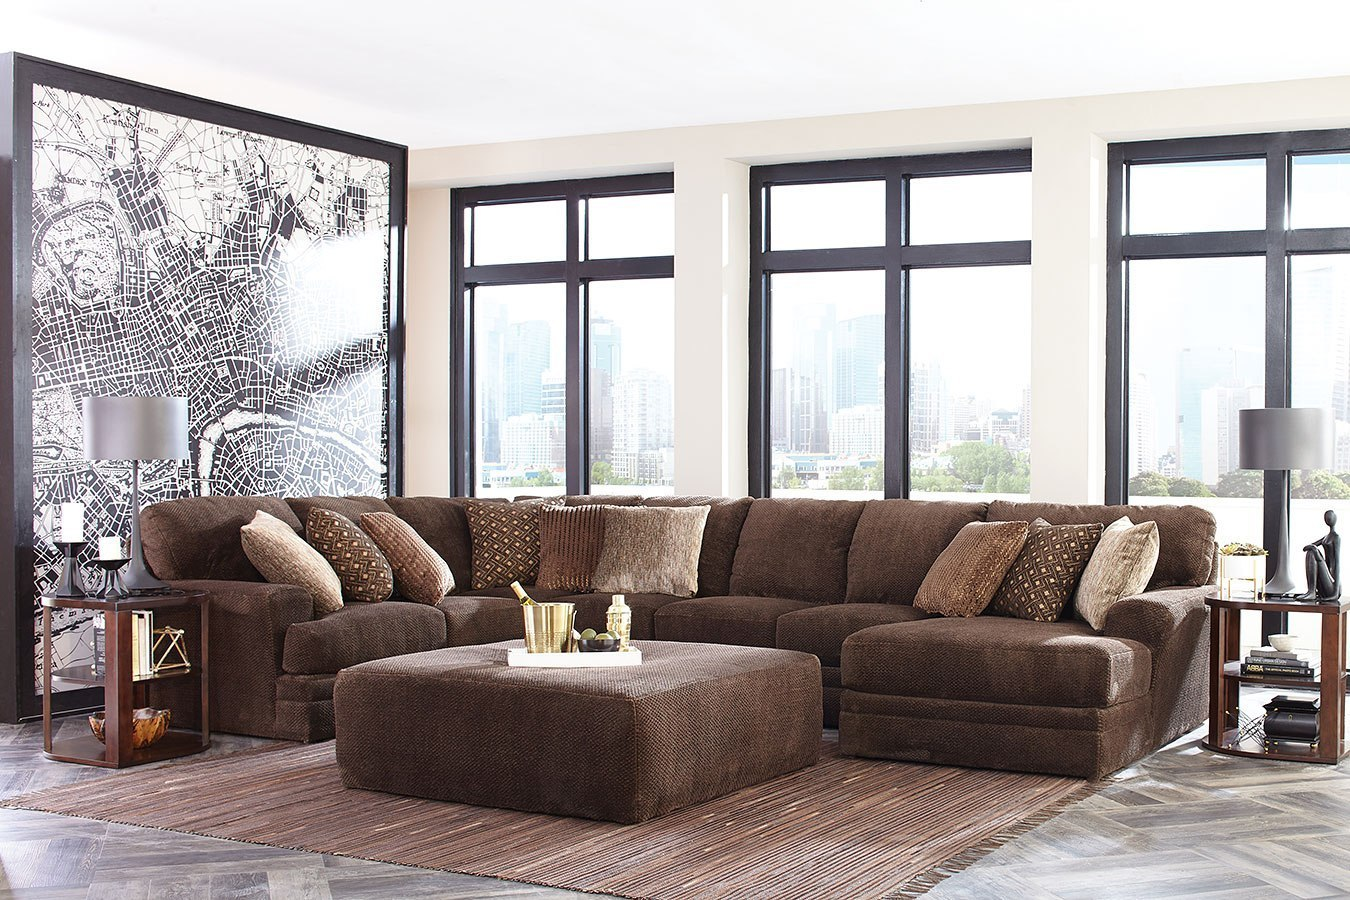 Mammoth Modular Sectional W Chaise Chocolate By Jackson